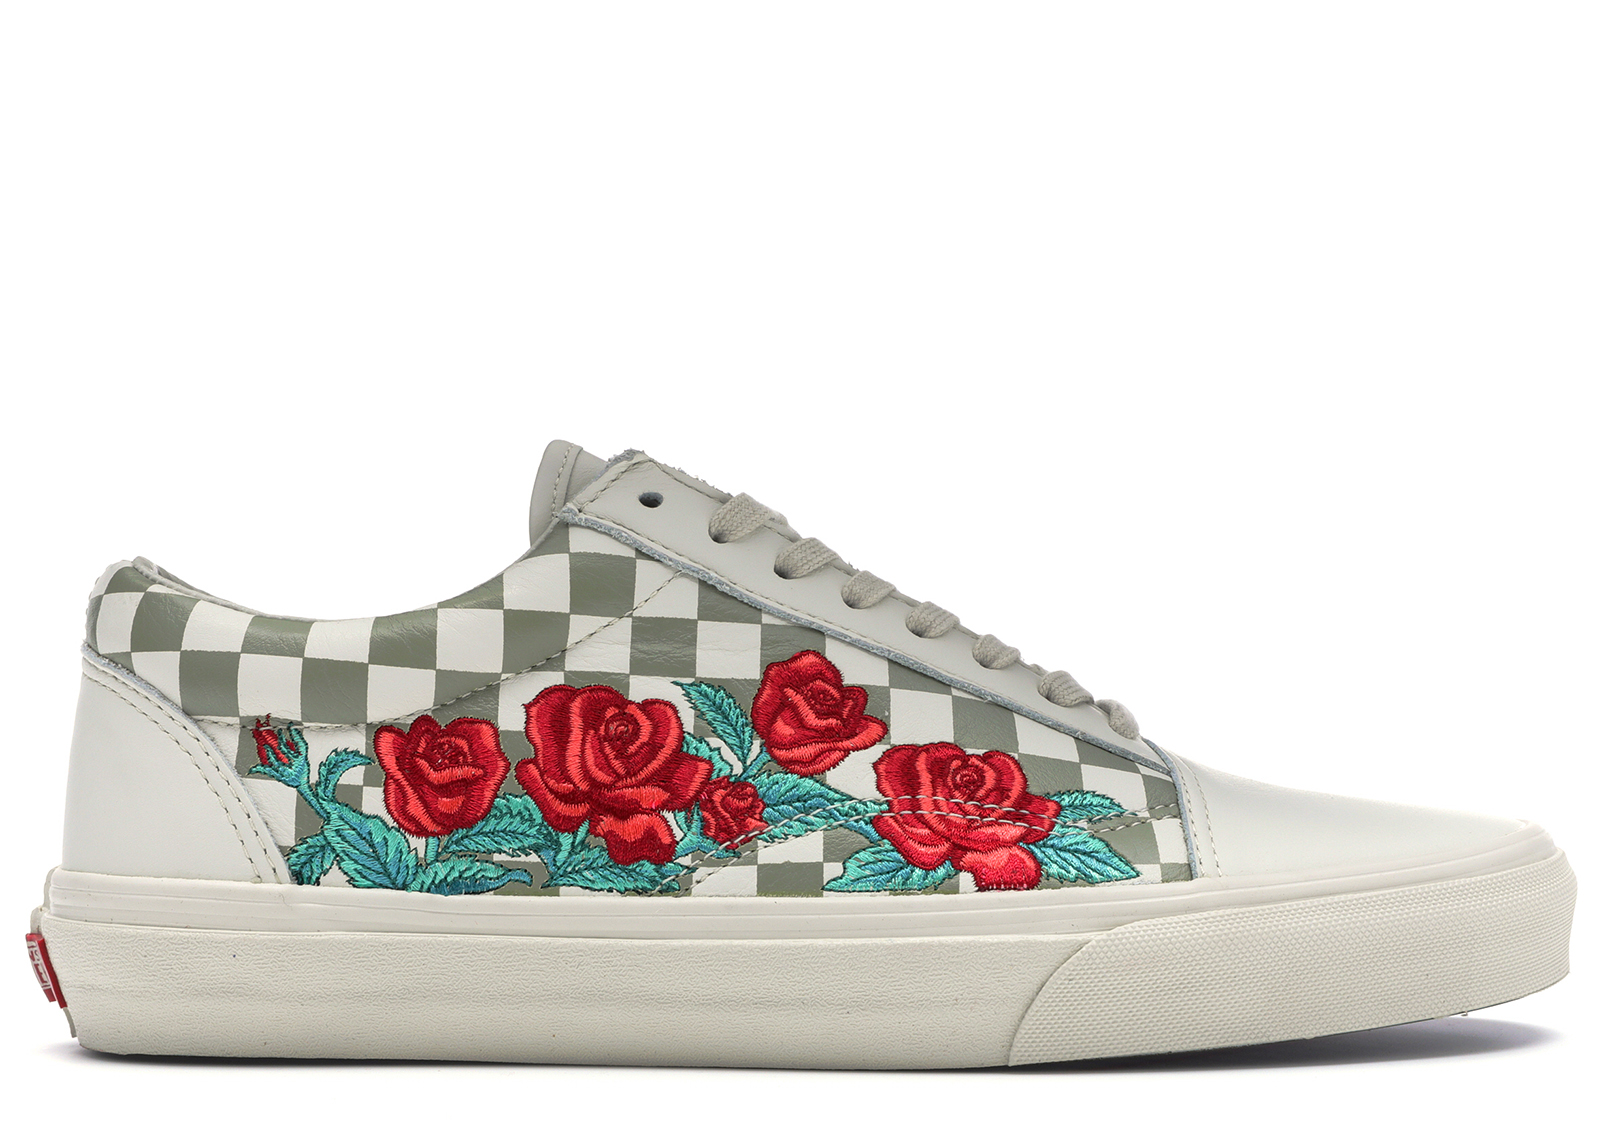 Vans Old Skool Rose Embroidery (White) - VN0A38G3QF9